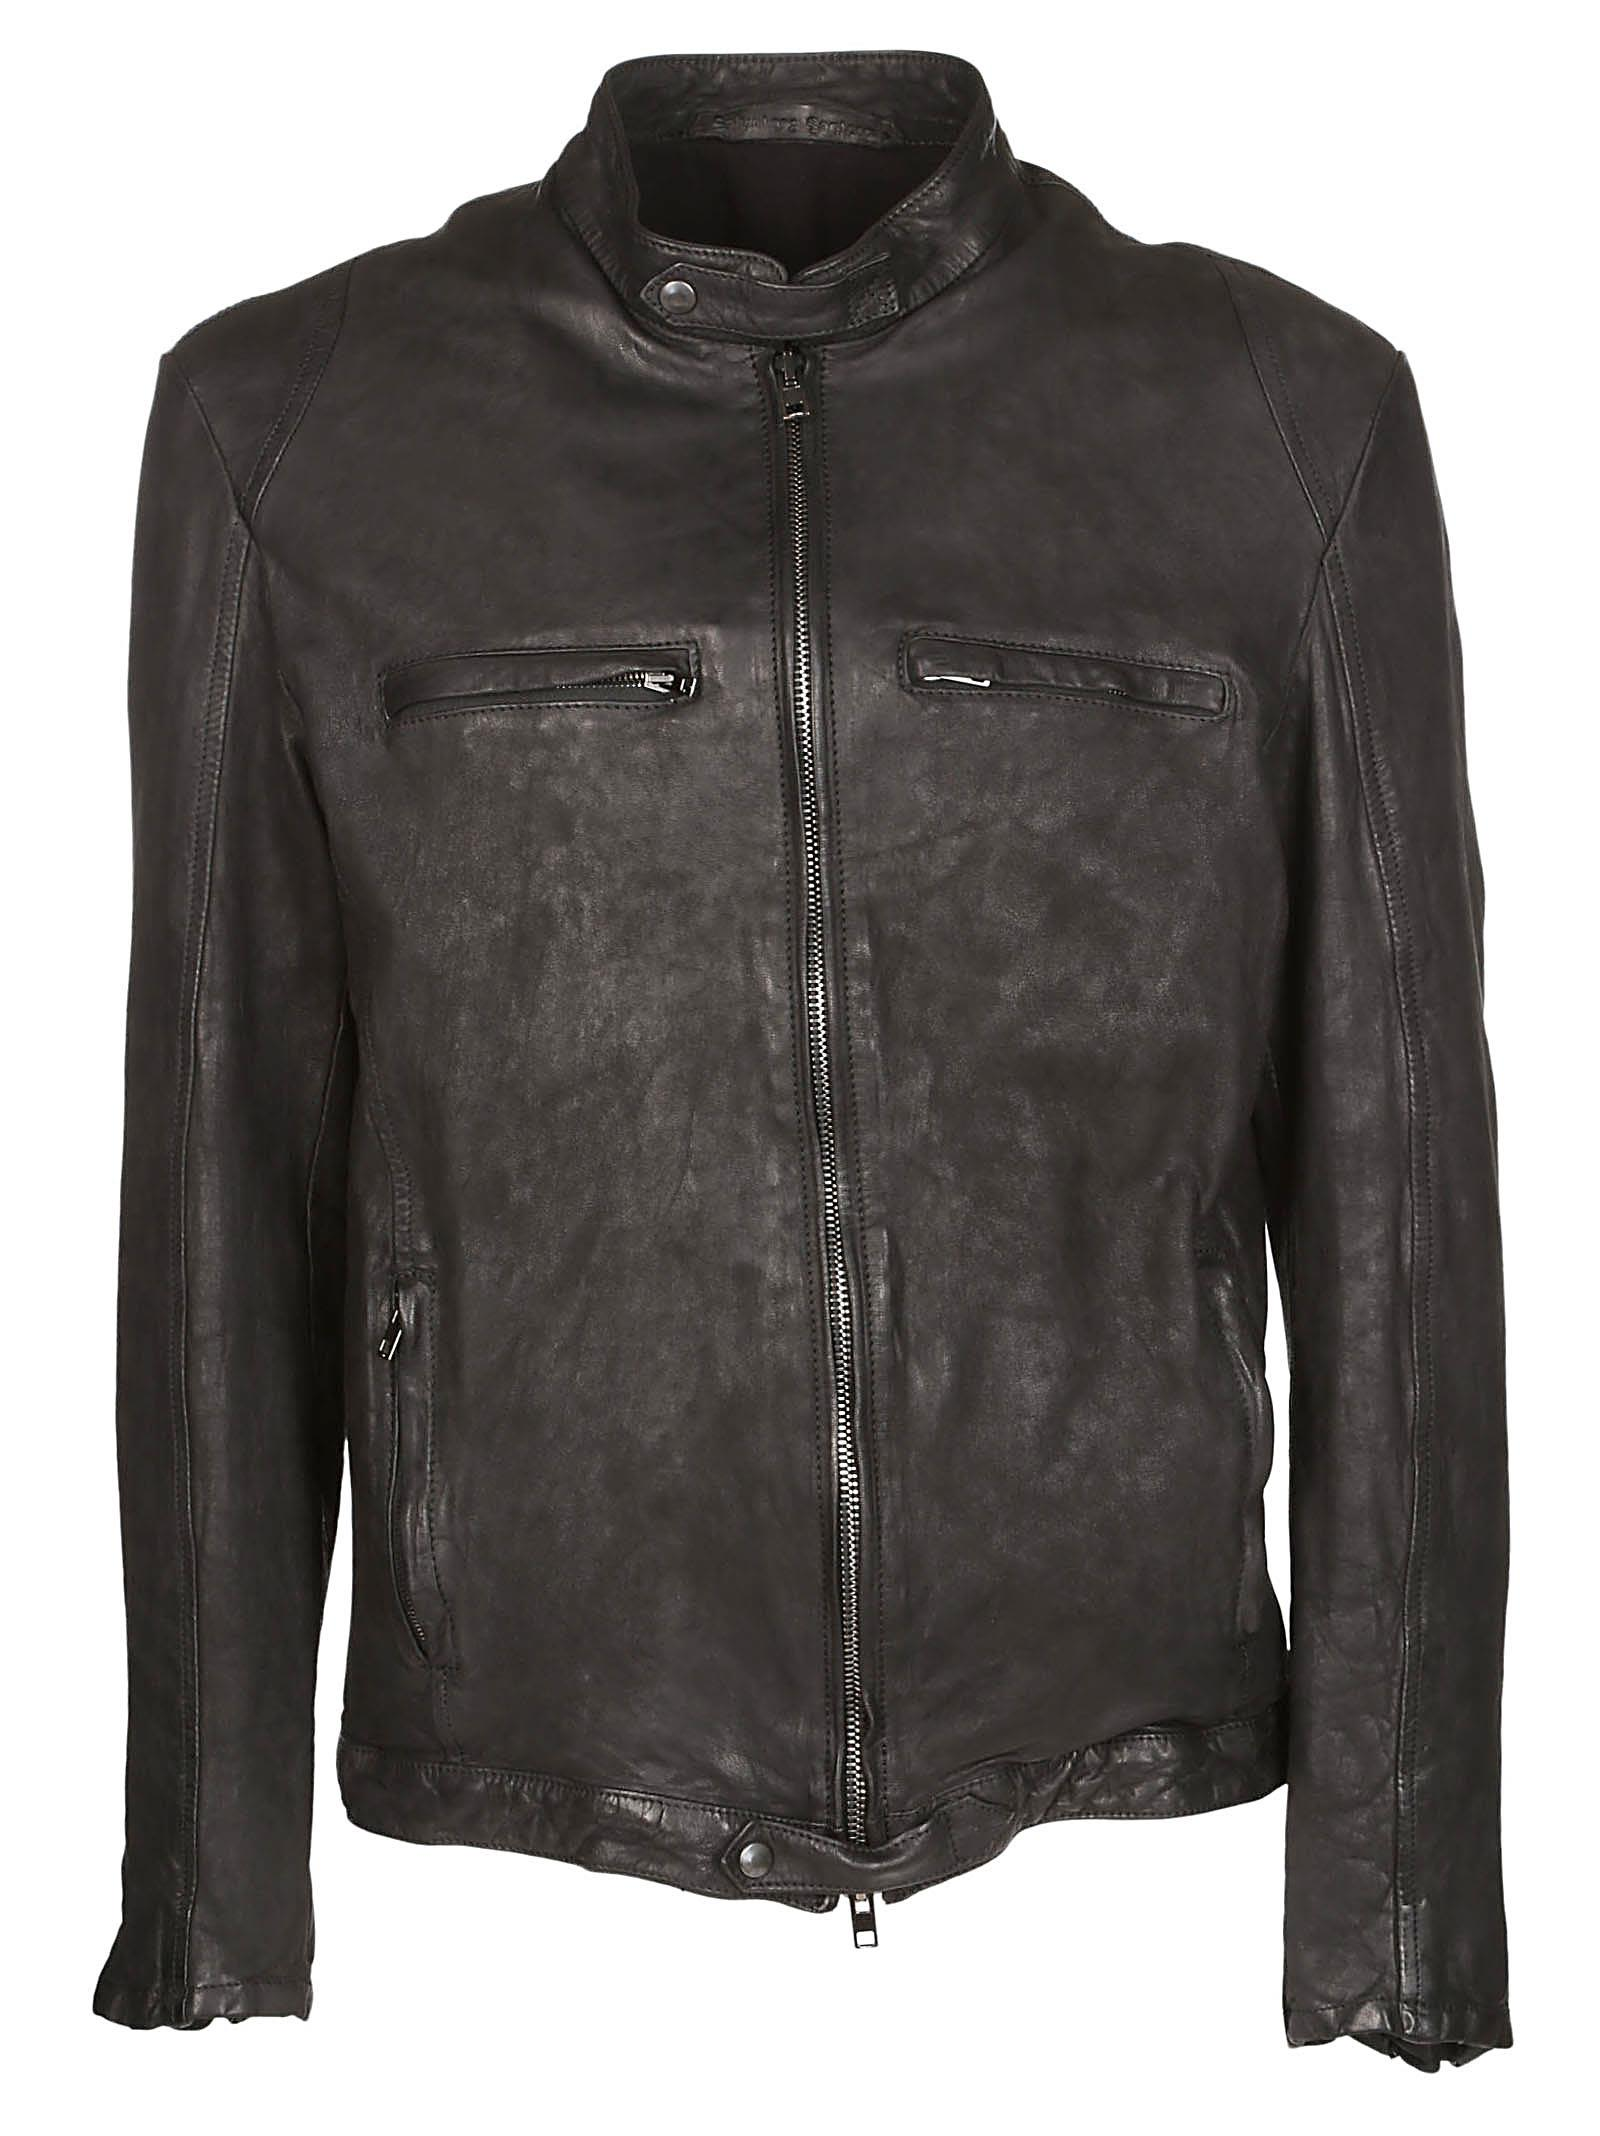 ZIPPED LEATHER JACKET